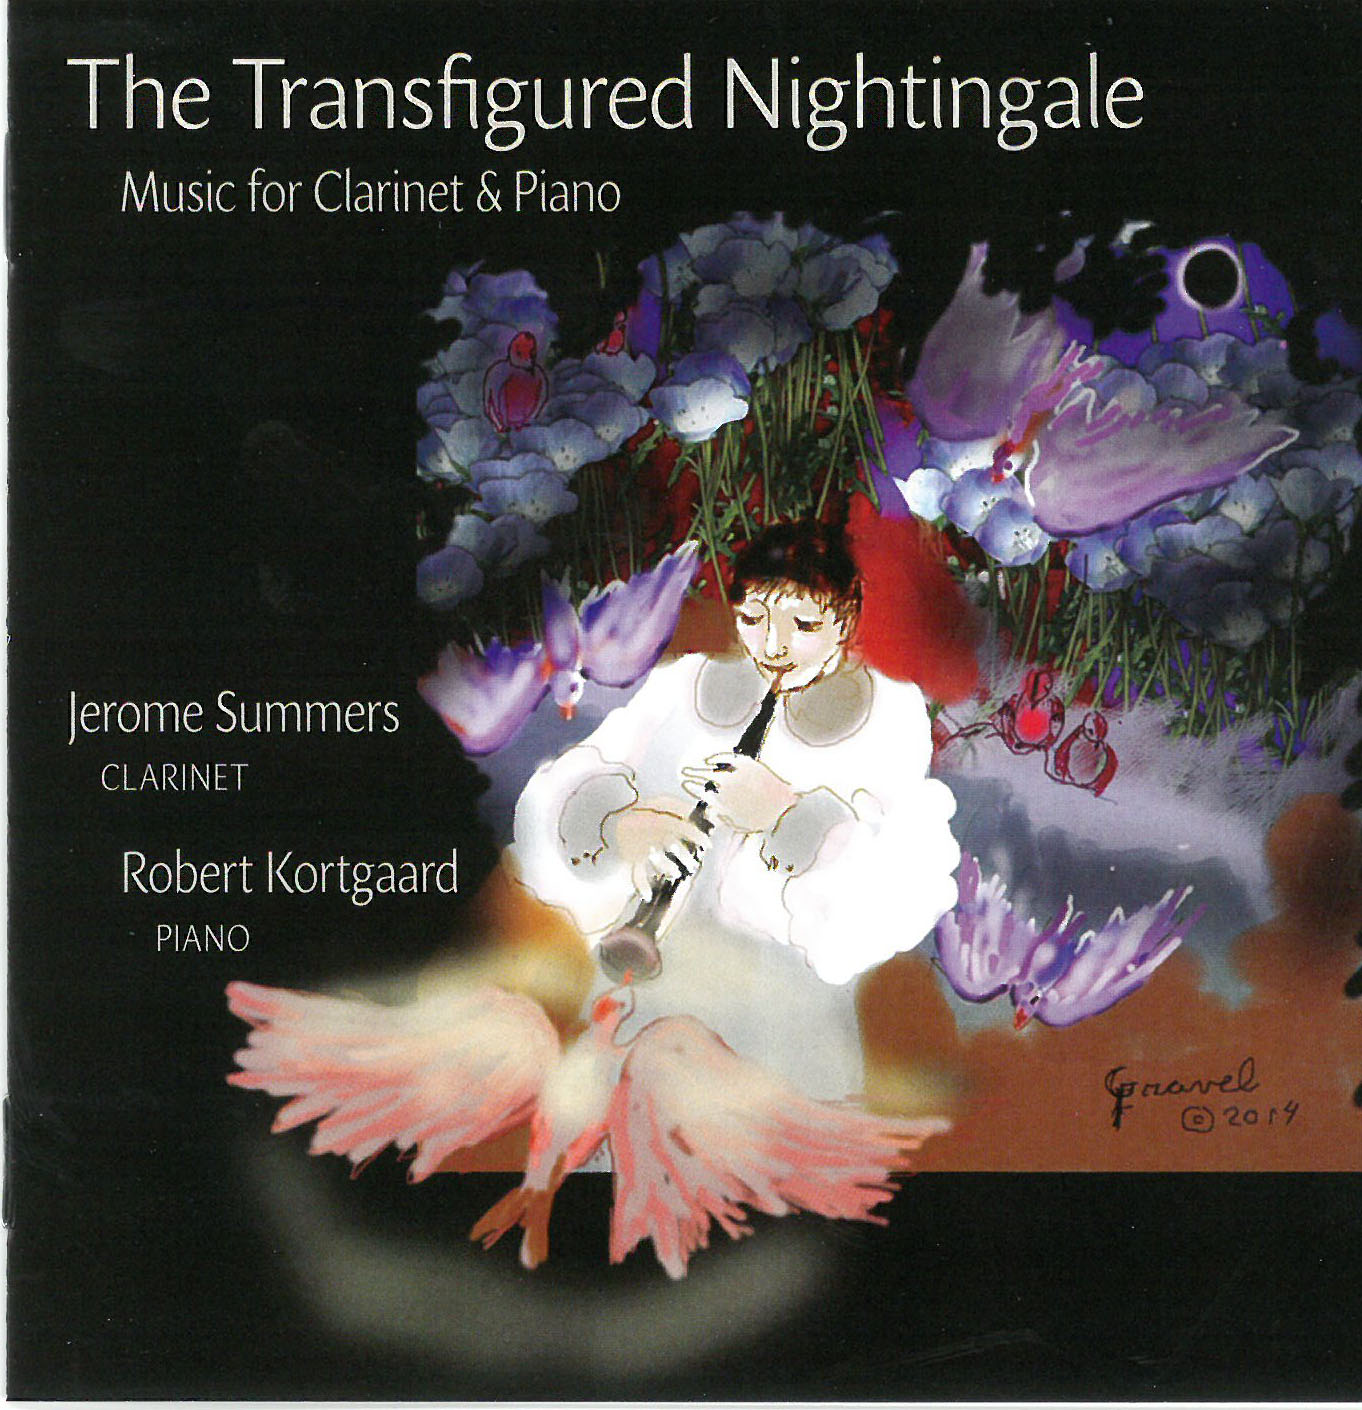 04 Modern 01 Transfigured Nightingale